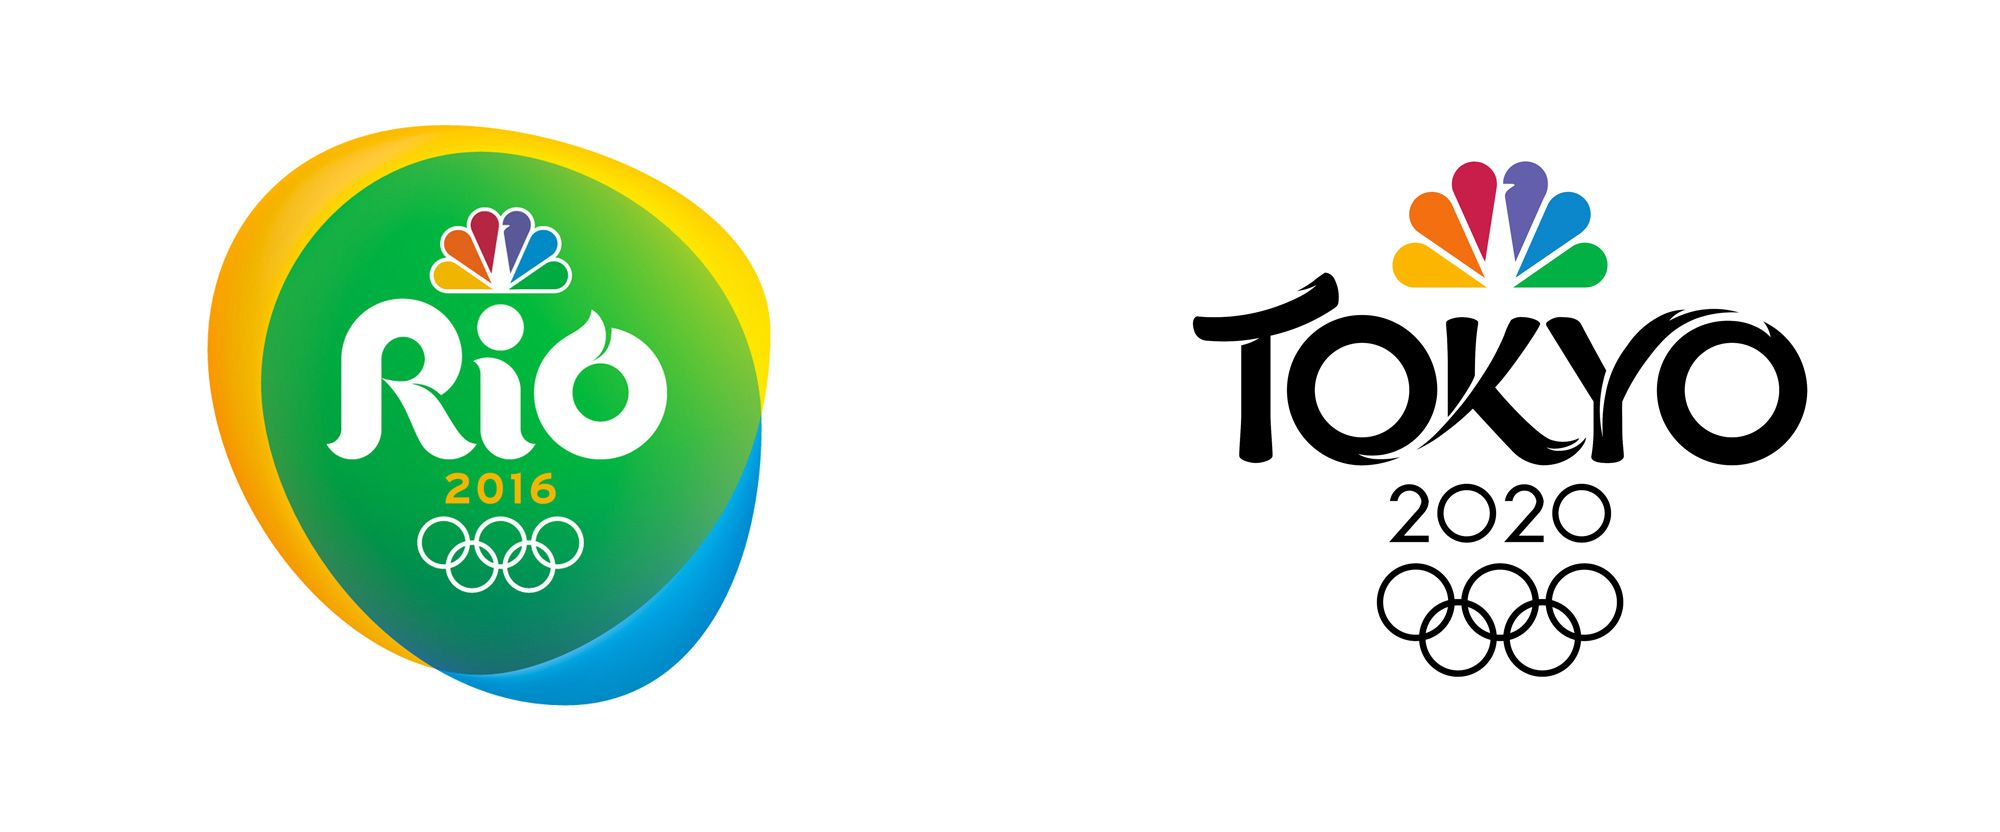 Noted New Logo for NBC Olympics 2020 Broadcast by Mocean